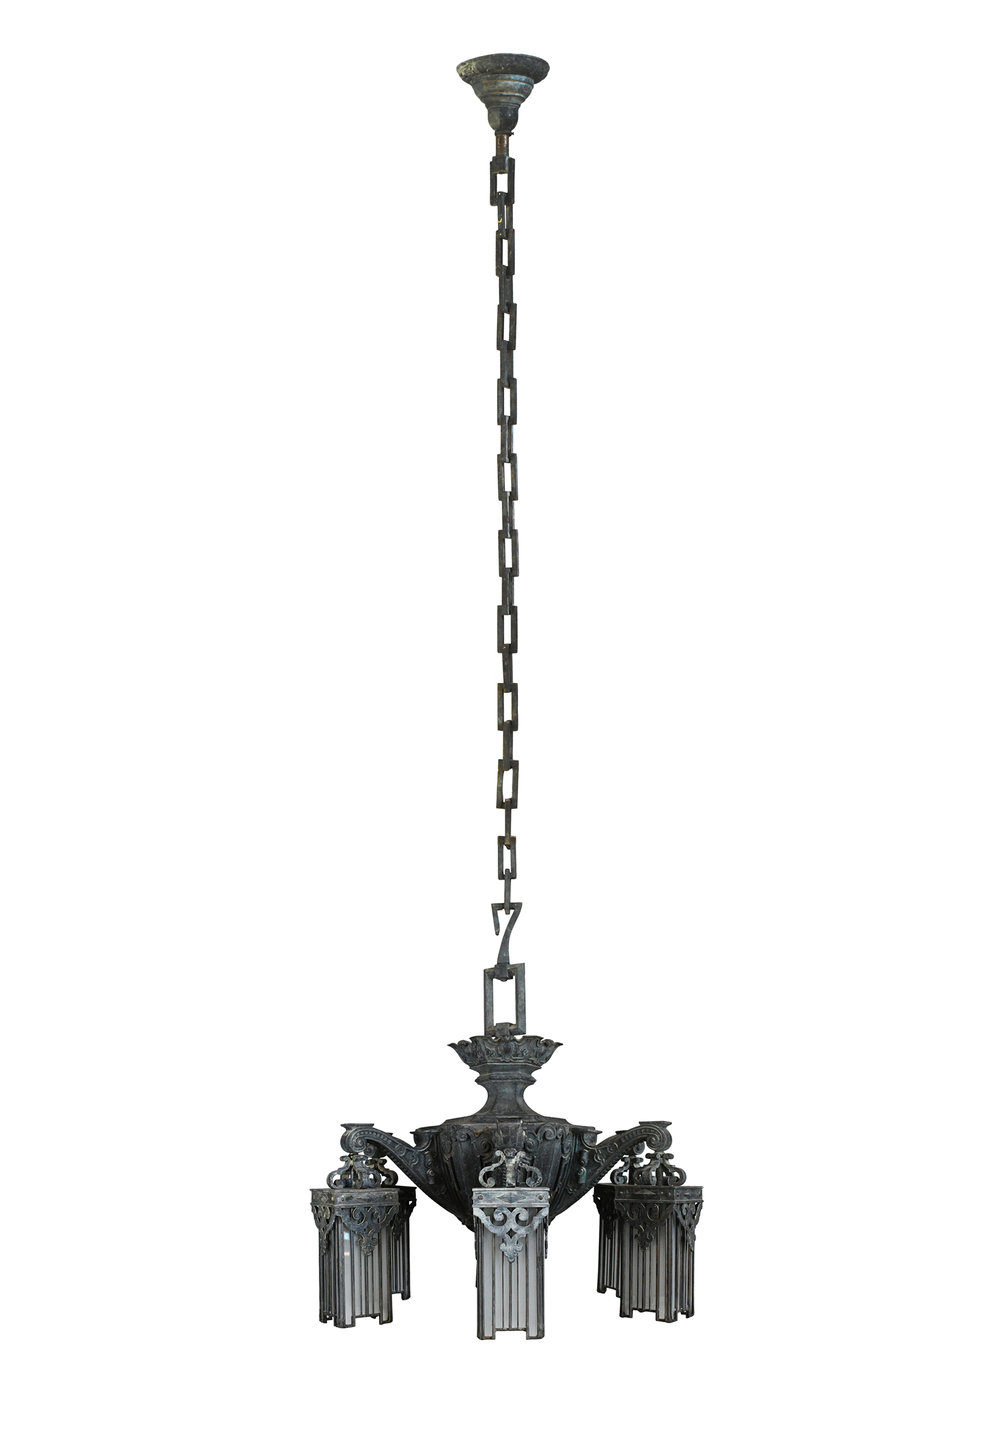 47235-cast-bronze-chandelier-main-2.jpg